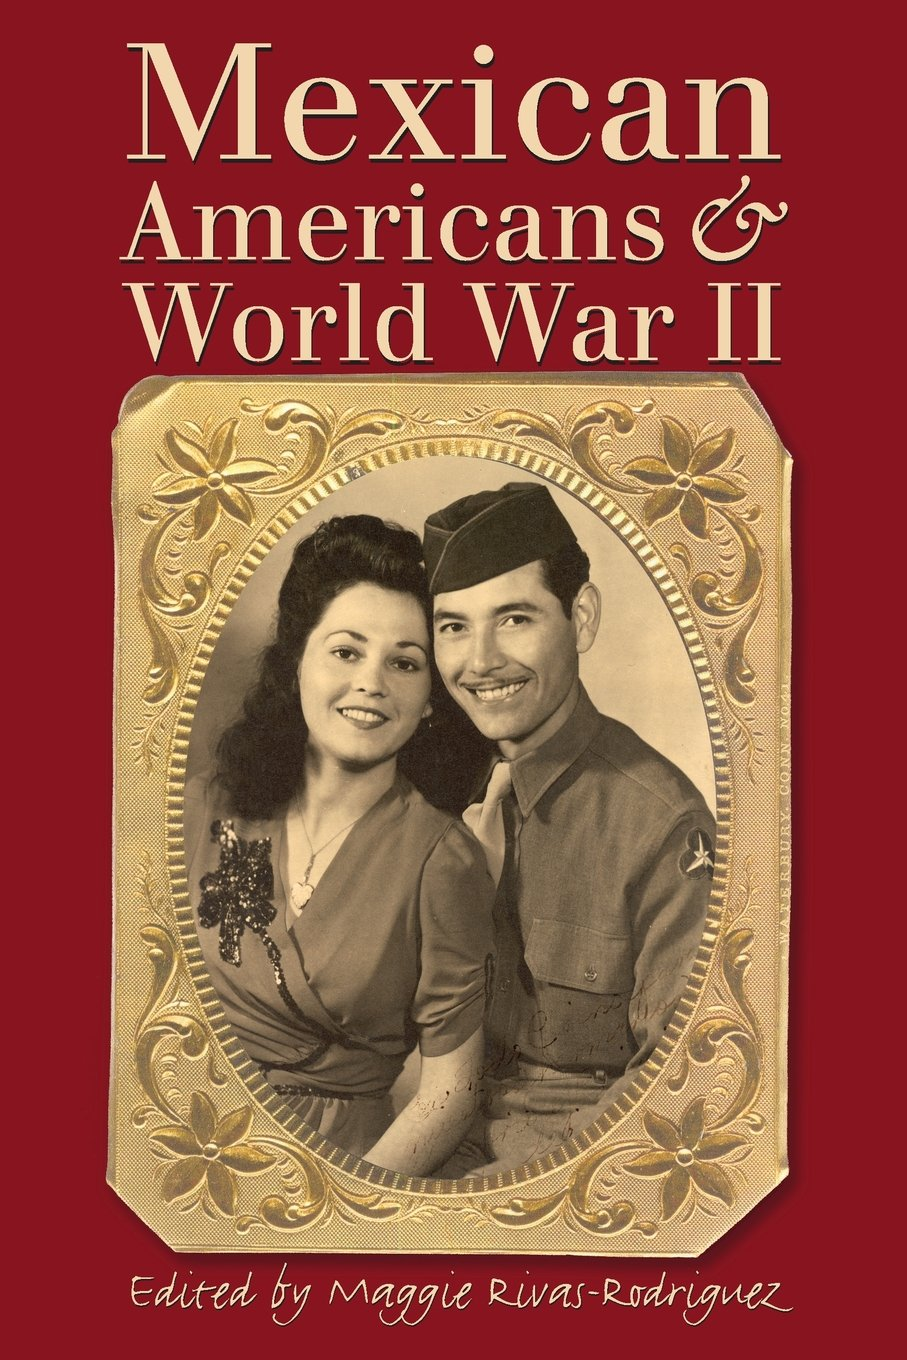 Mexican Americans and World War II Paperback – April 1, 2005